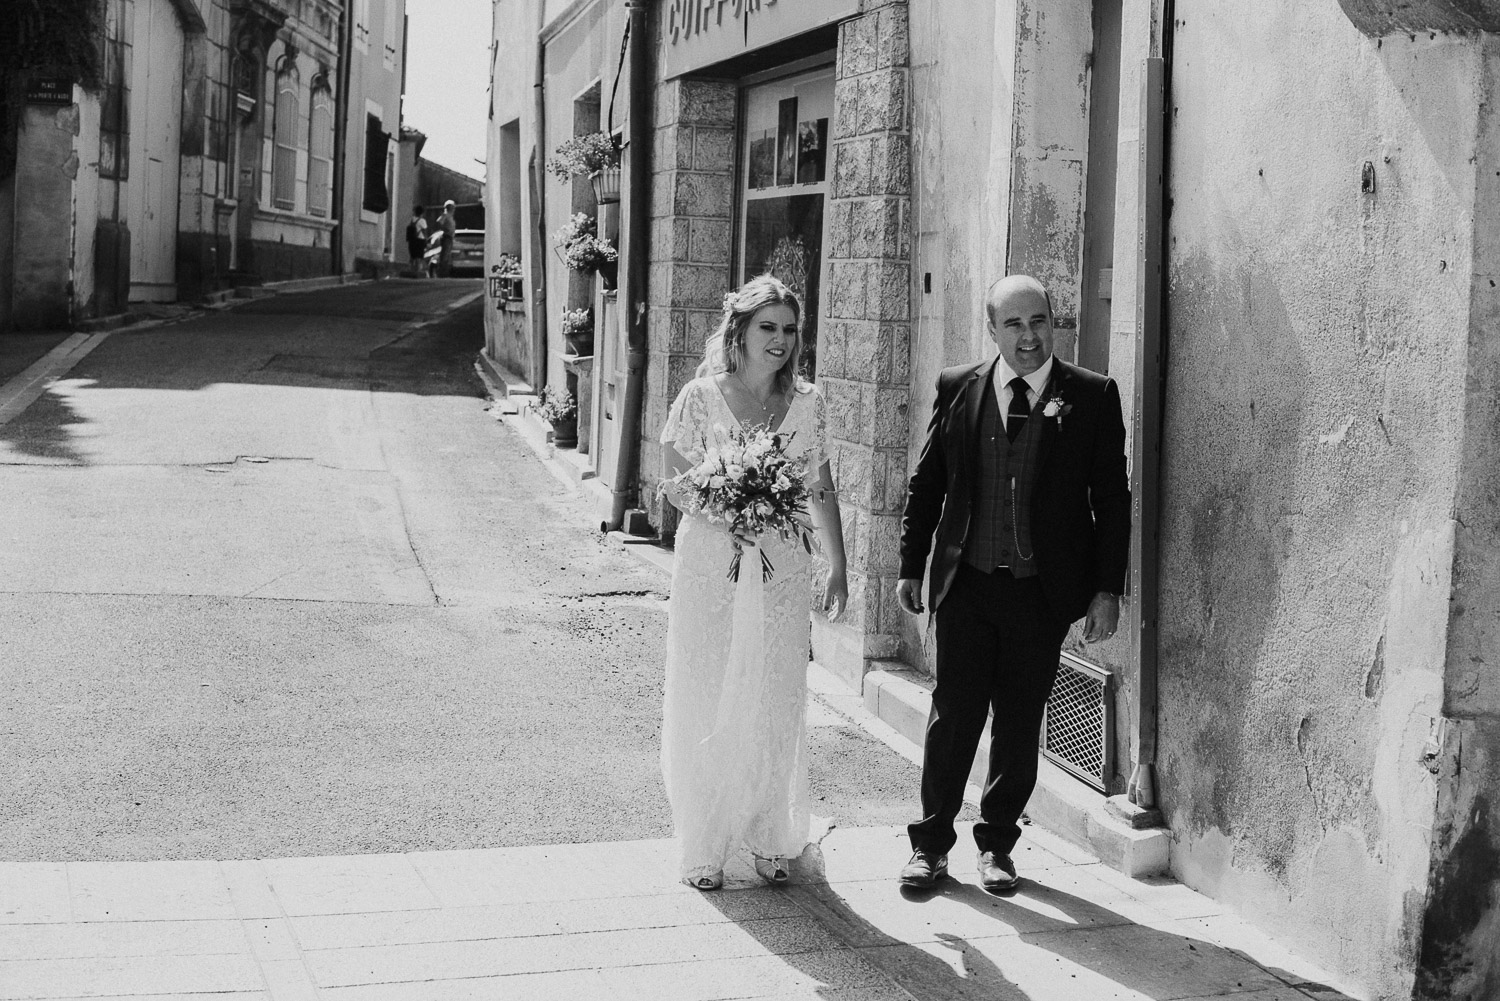 chateau_canet_carcassonne_wedding_katy_webb_photography_france_UK133